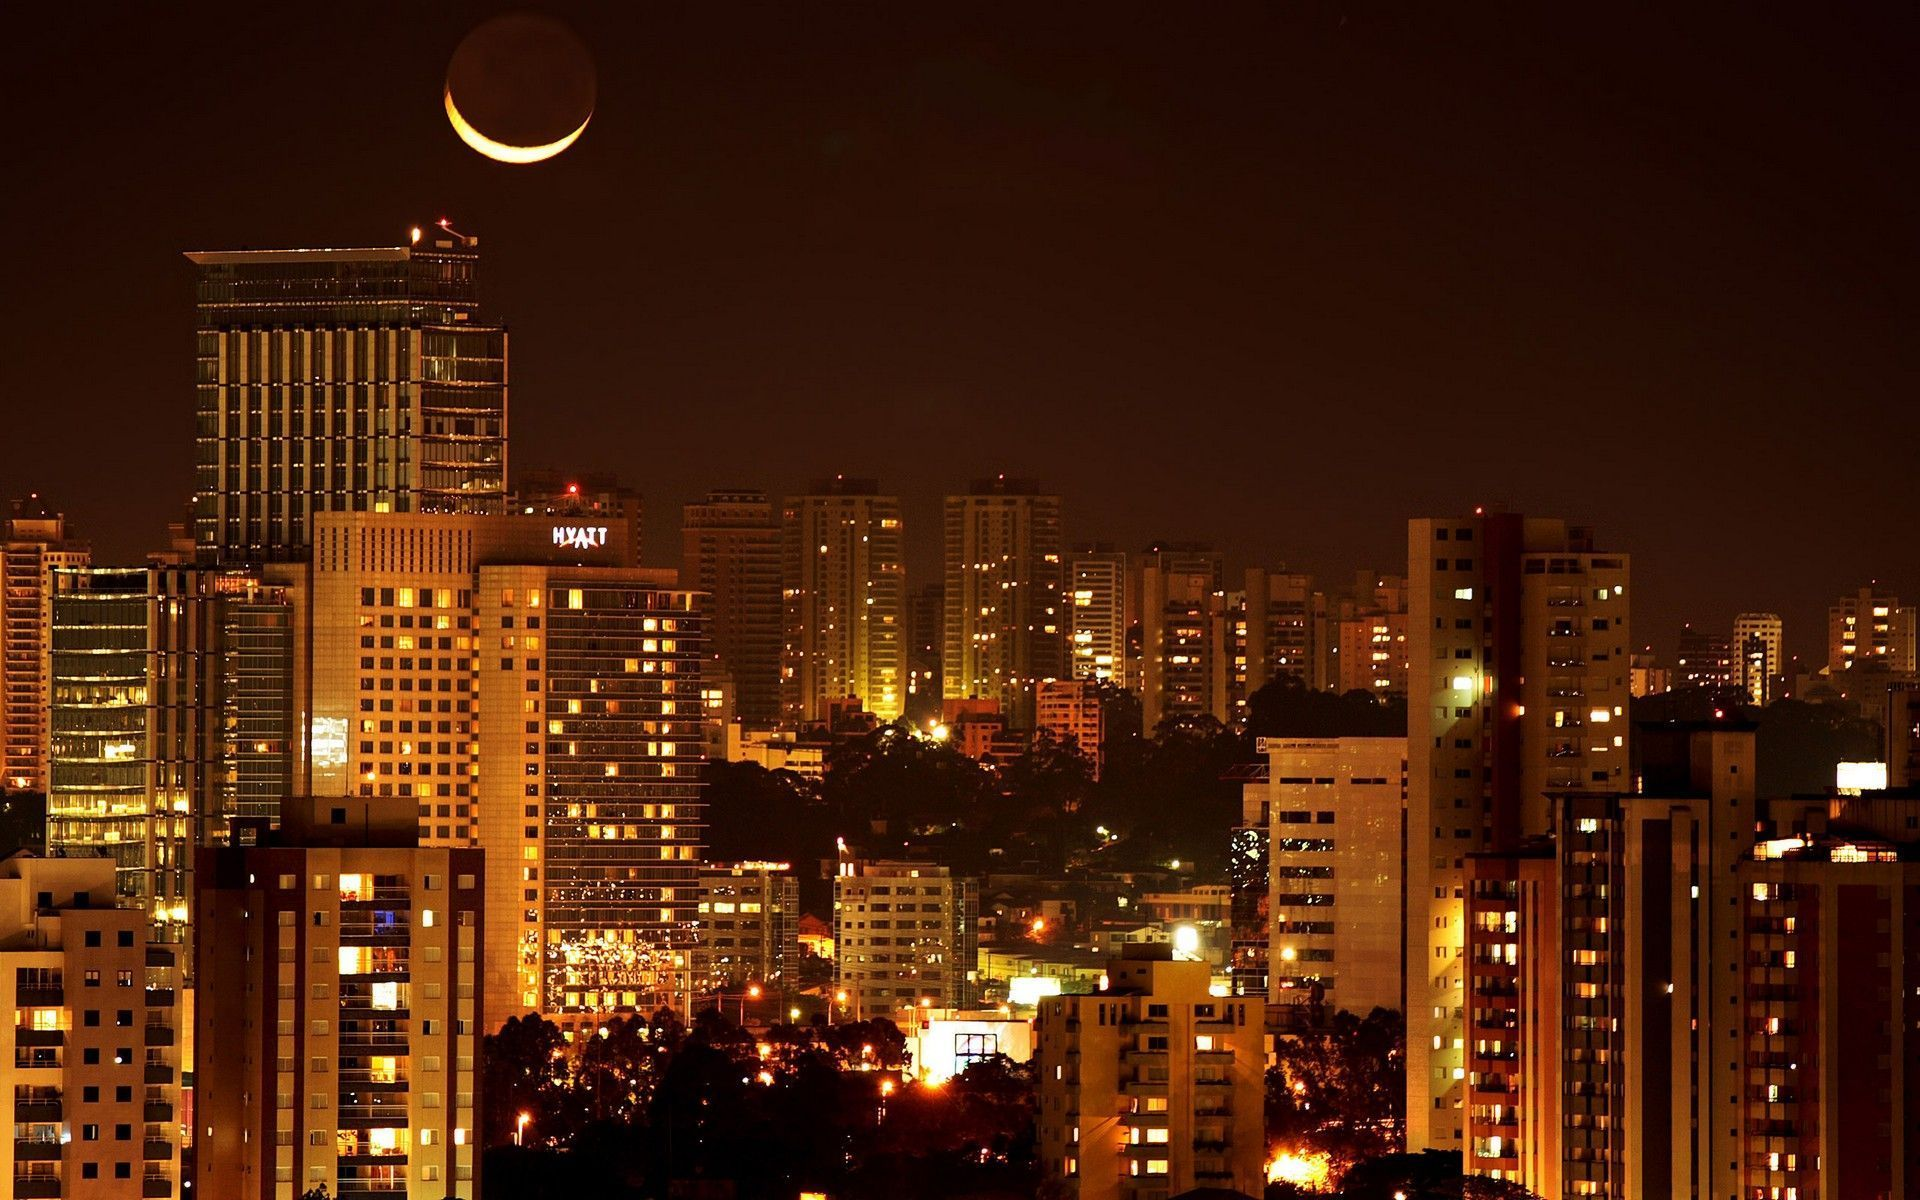 Night City Wallpapers Picture | Landscape Wallpapers ...